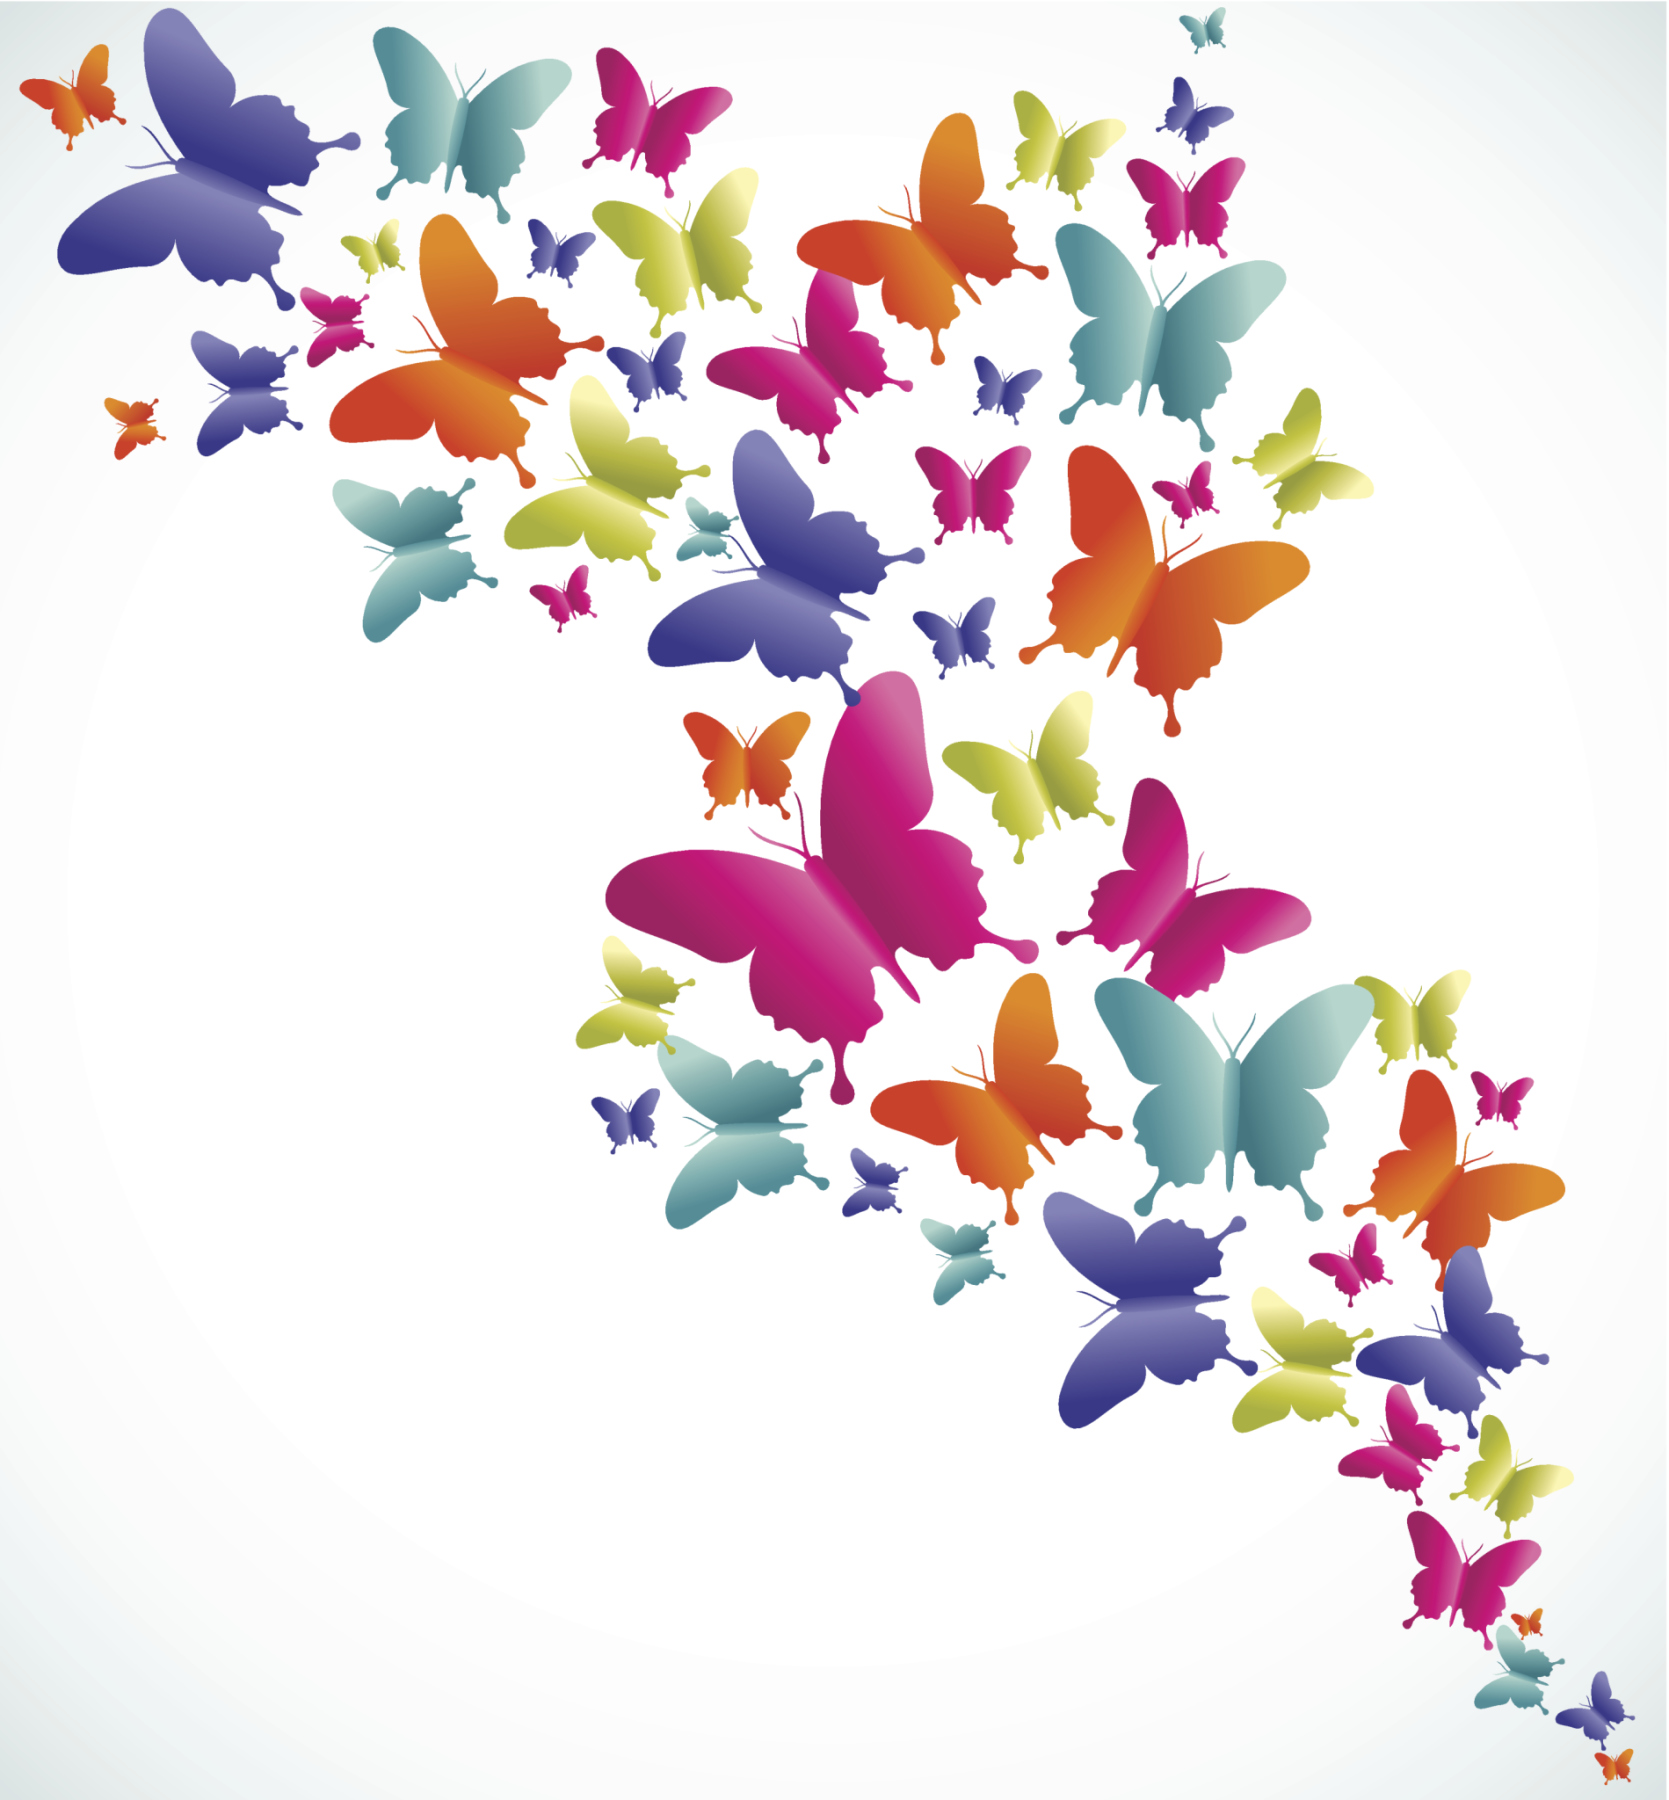 Farfalle colorate download tattoo pictures to pin on pinterest for Foto farfalle colorate